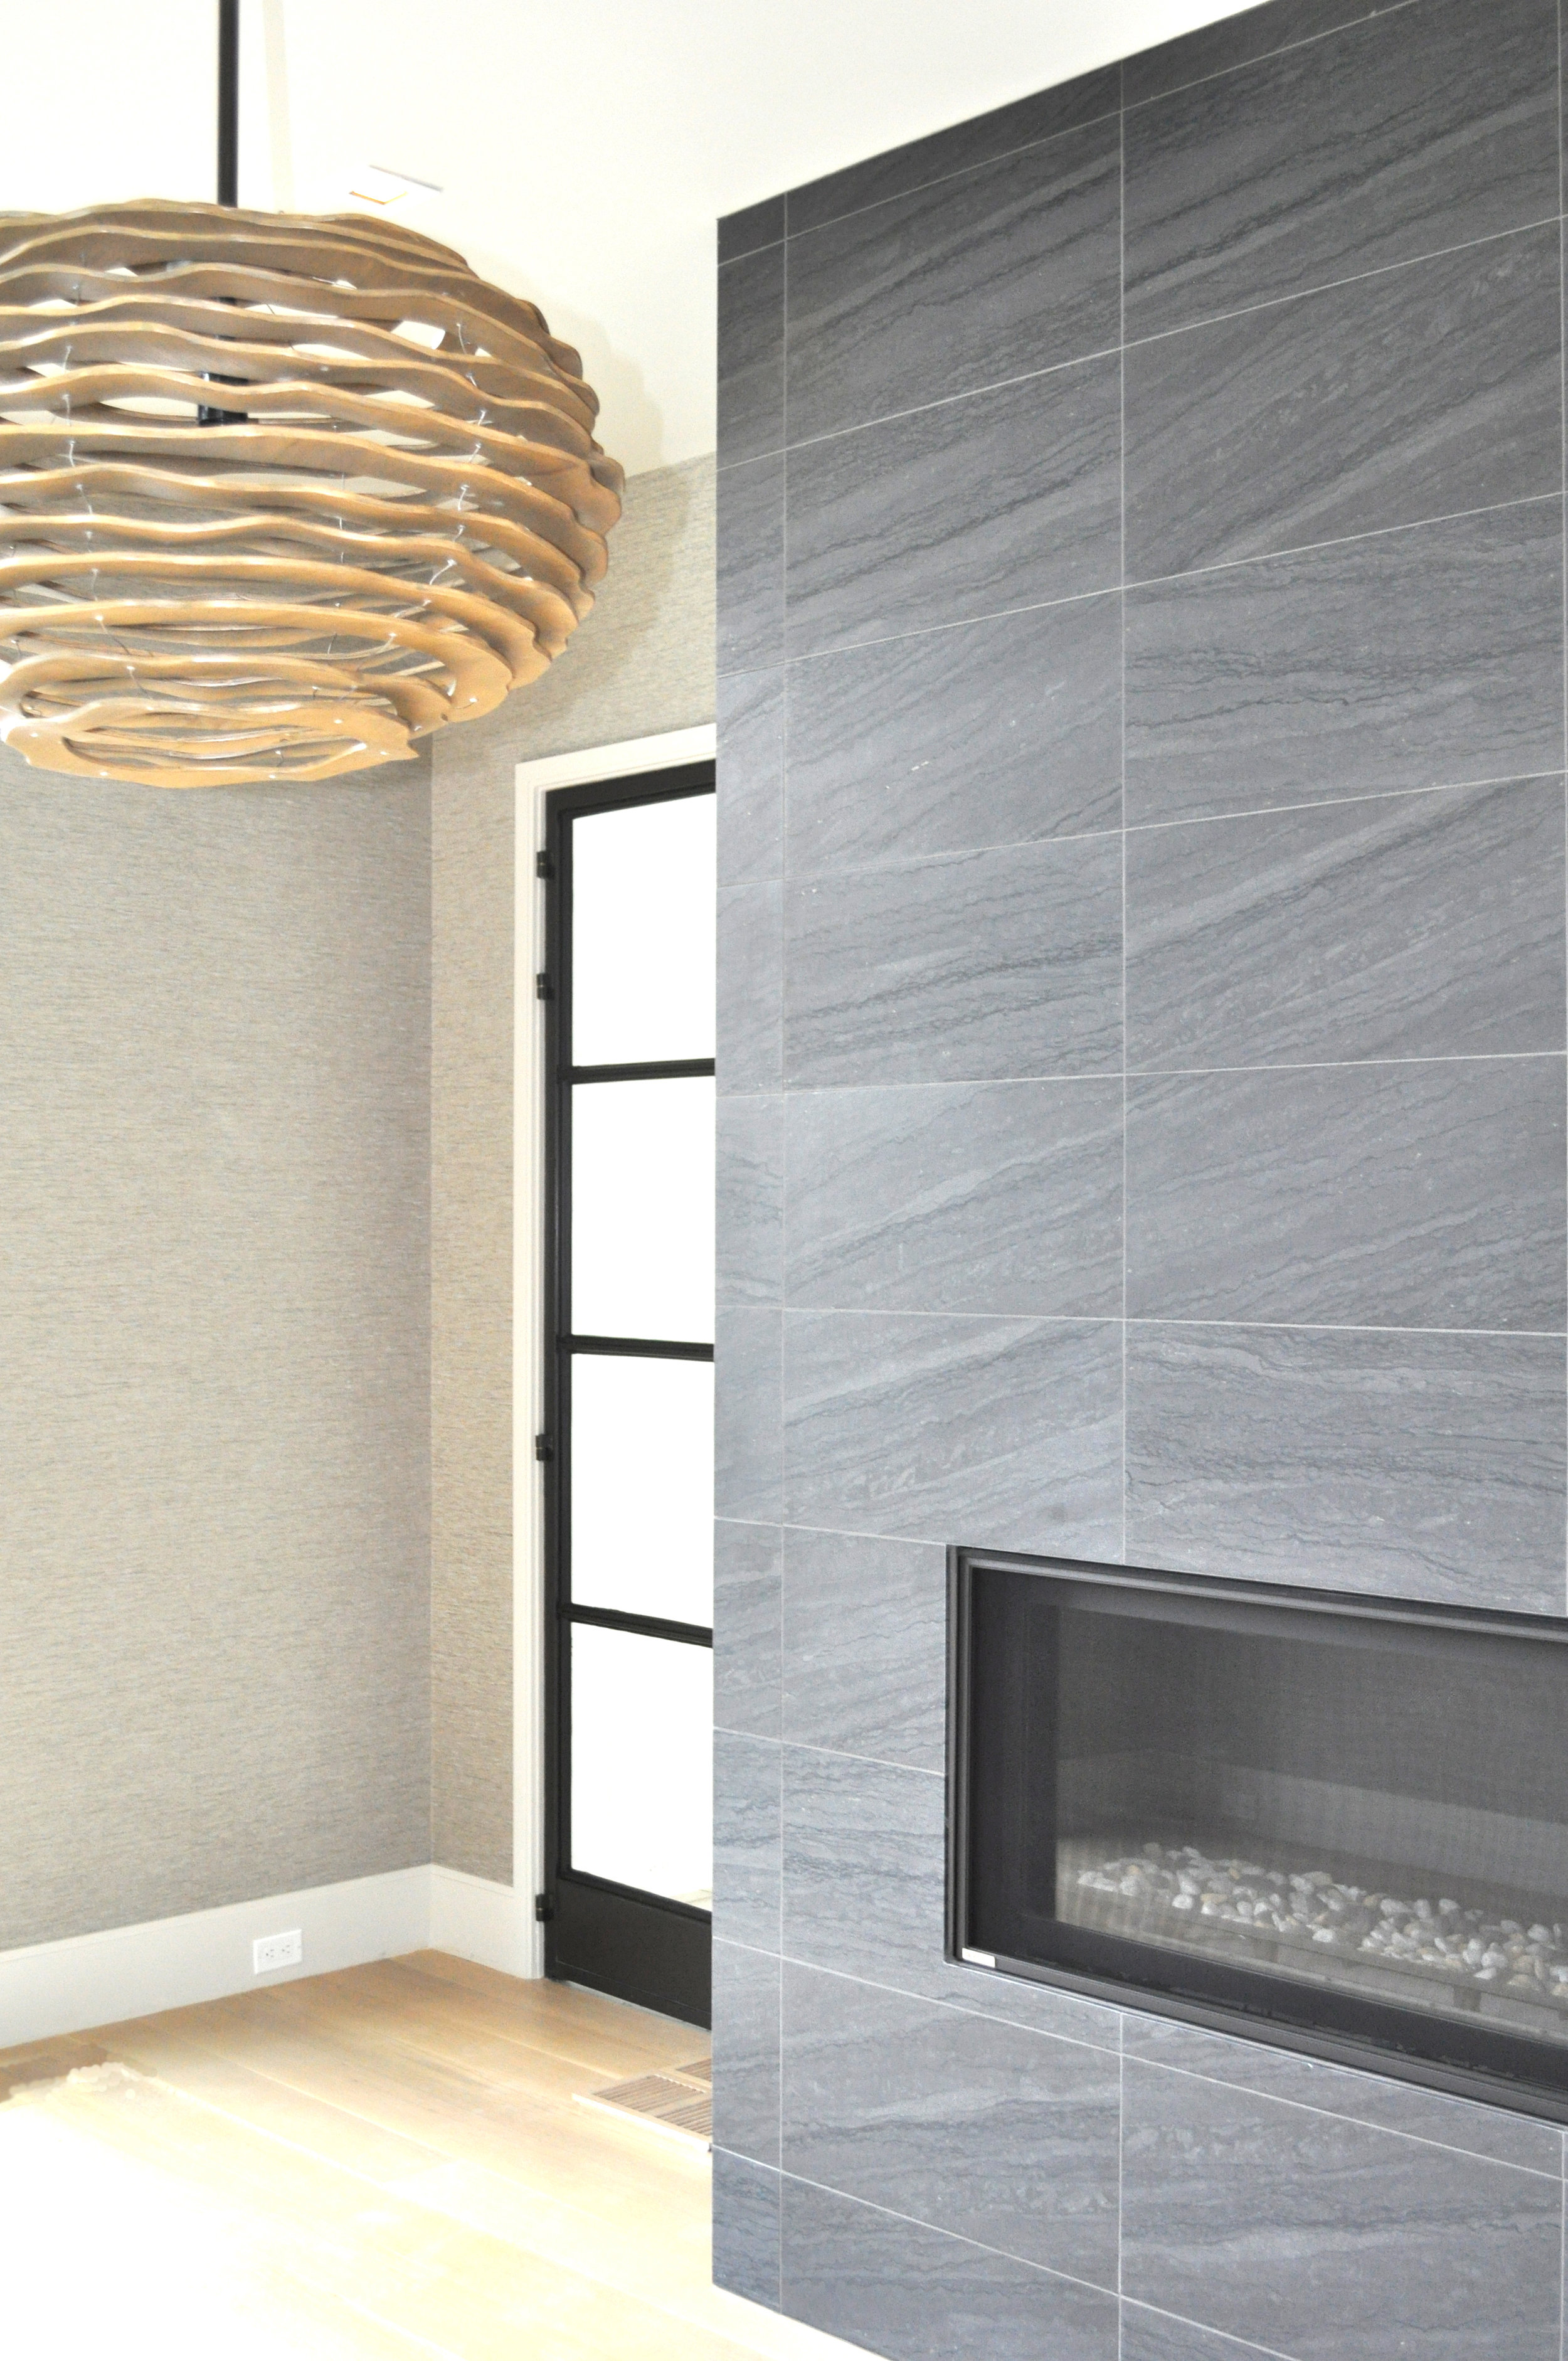 Fireplace and Lighting for For Milton Development with Laura Kaehler Architects and Rebecka Hekmat